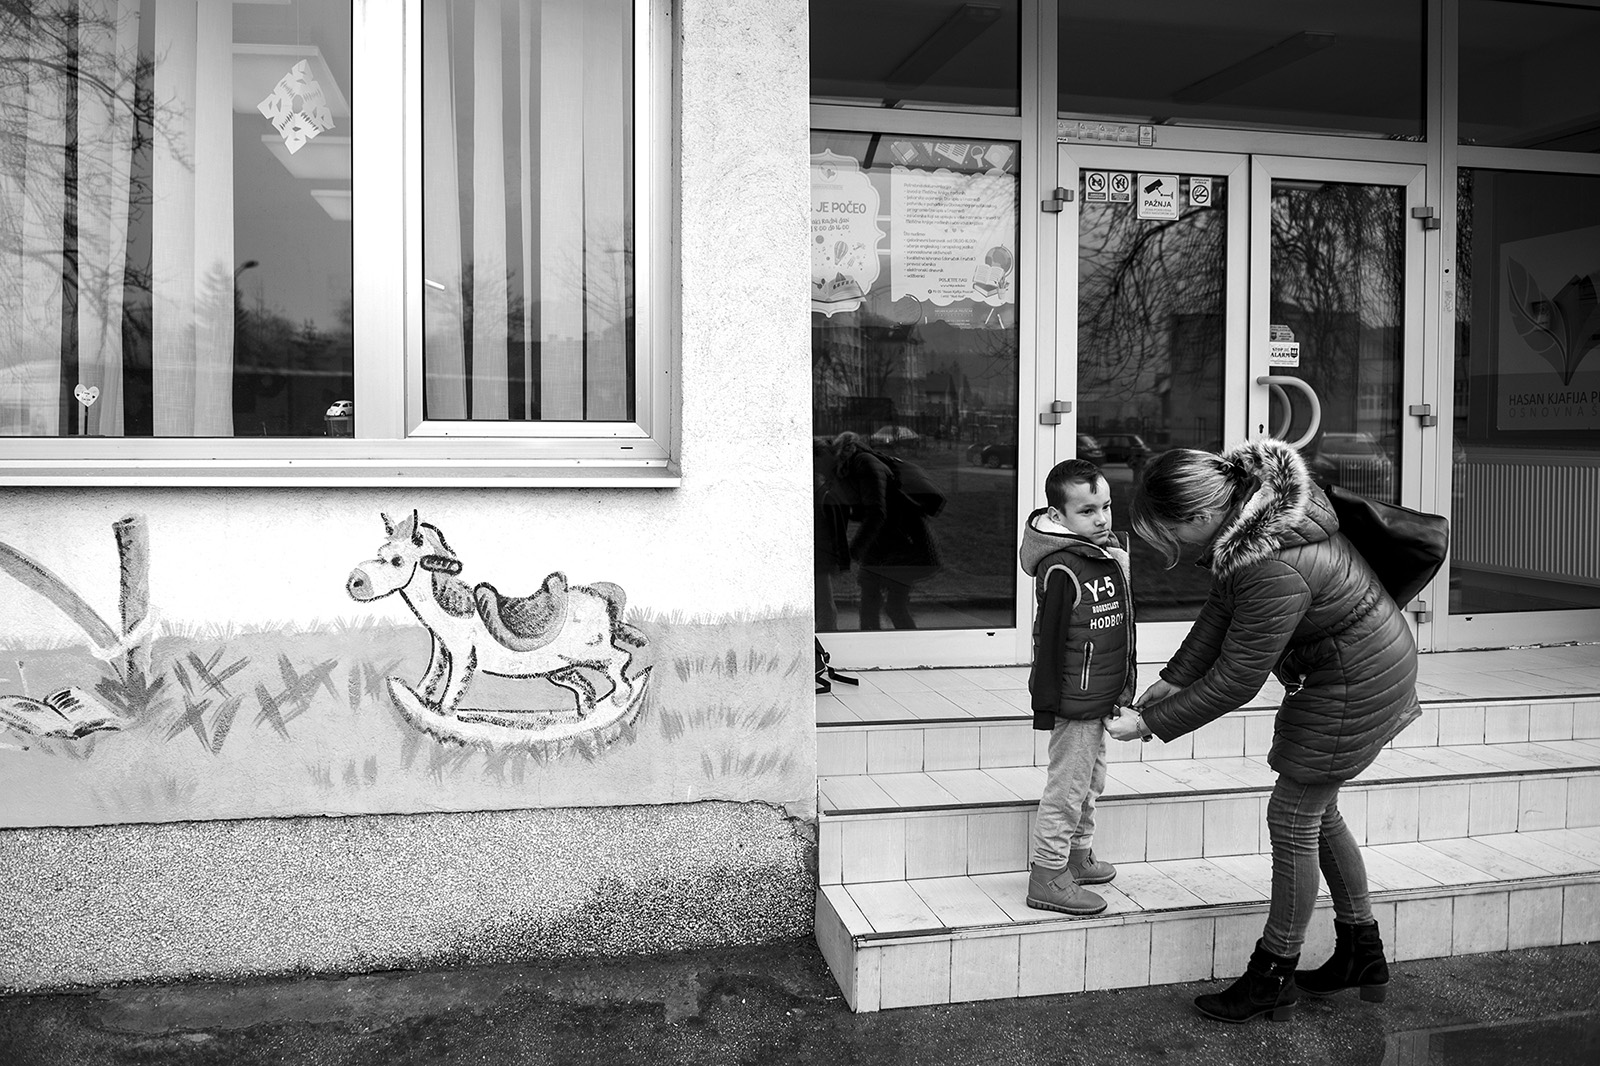 Elmina and Ismail after the school day in front of the elementary school Hasan Kjafija Pruscak in Zenica.